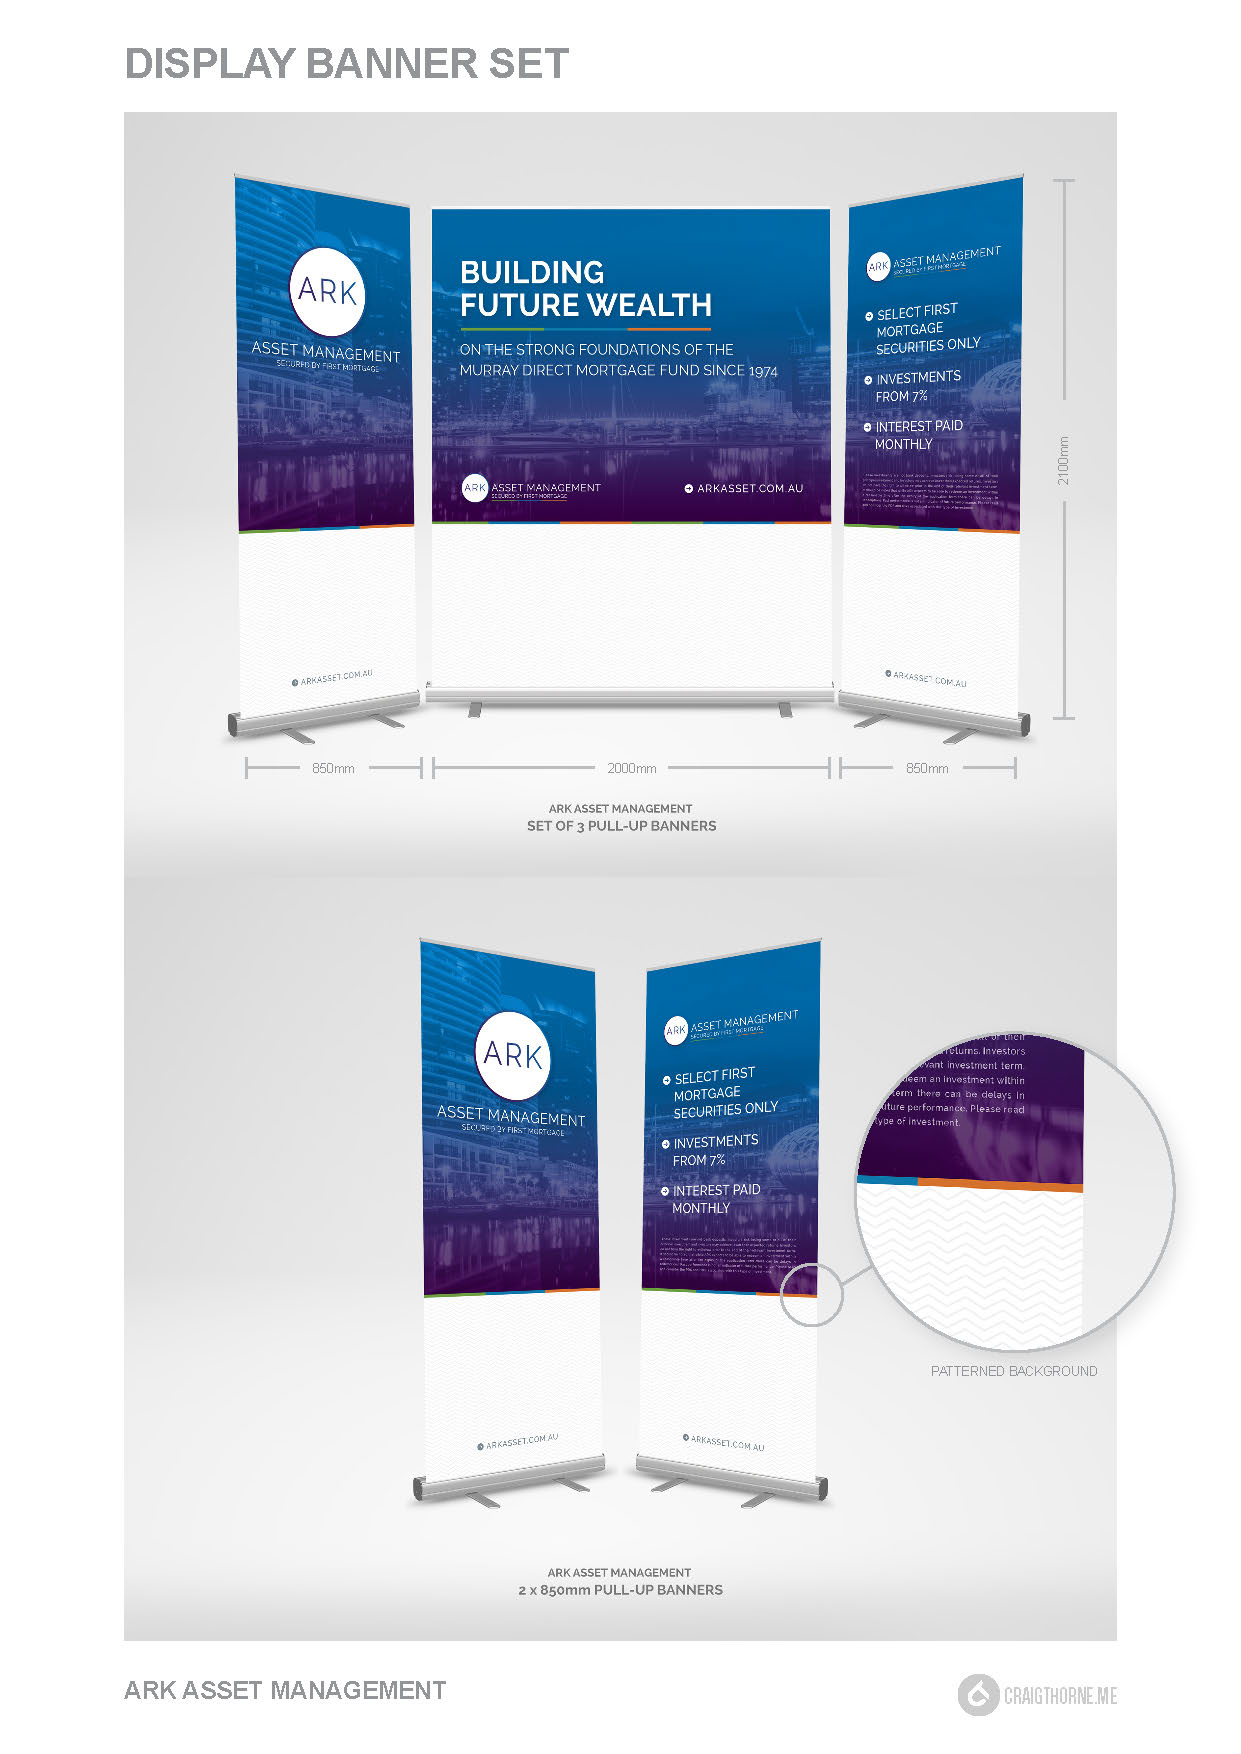 Ark Asset Management - PULL-UP BANNER PROOF SHEET - 1.jpg